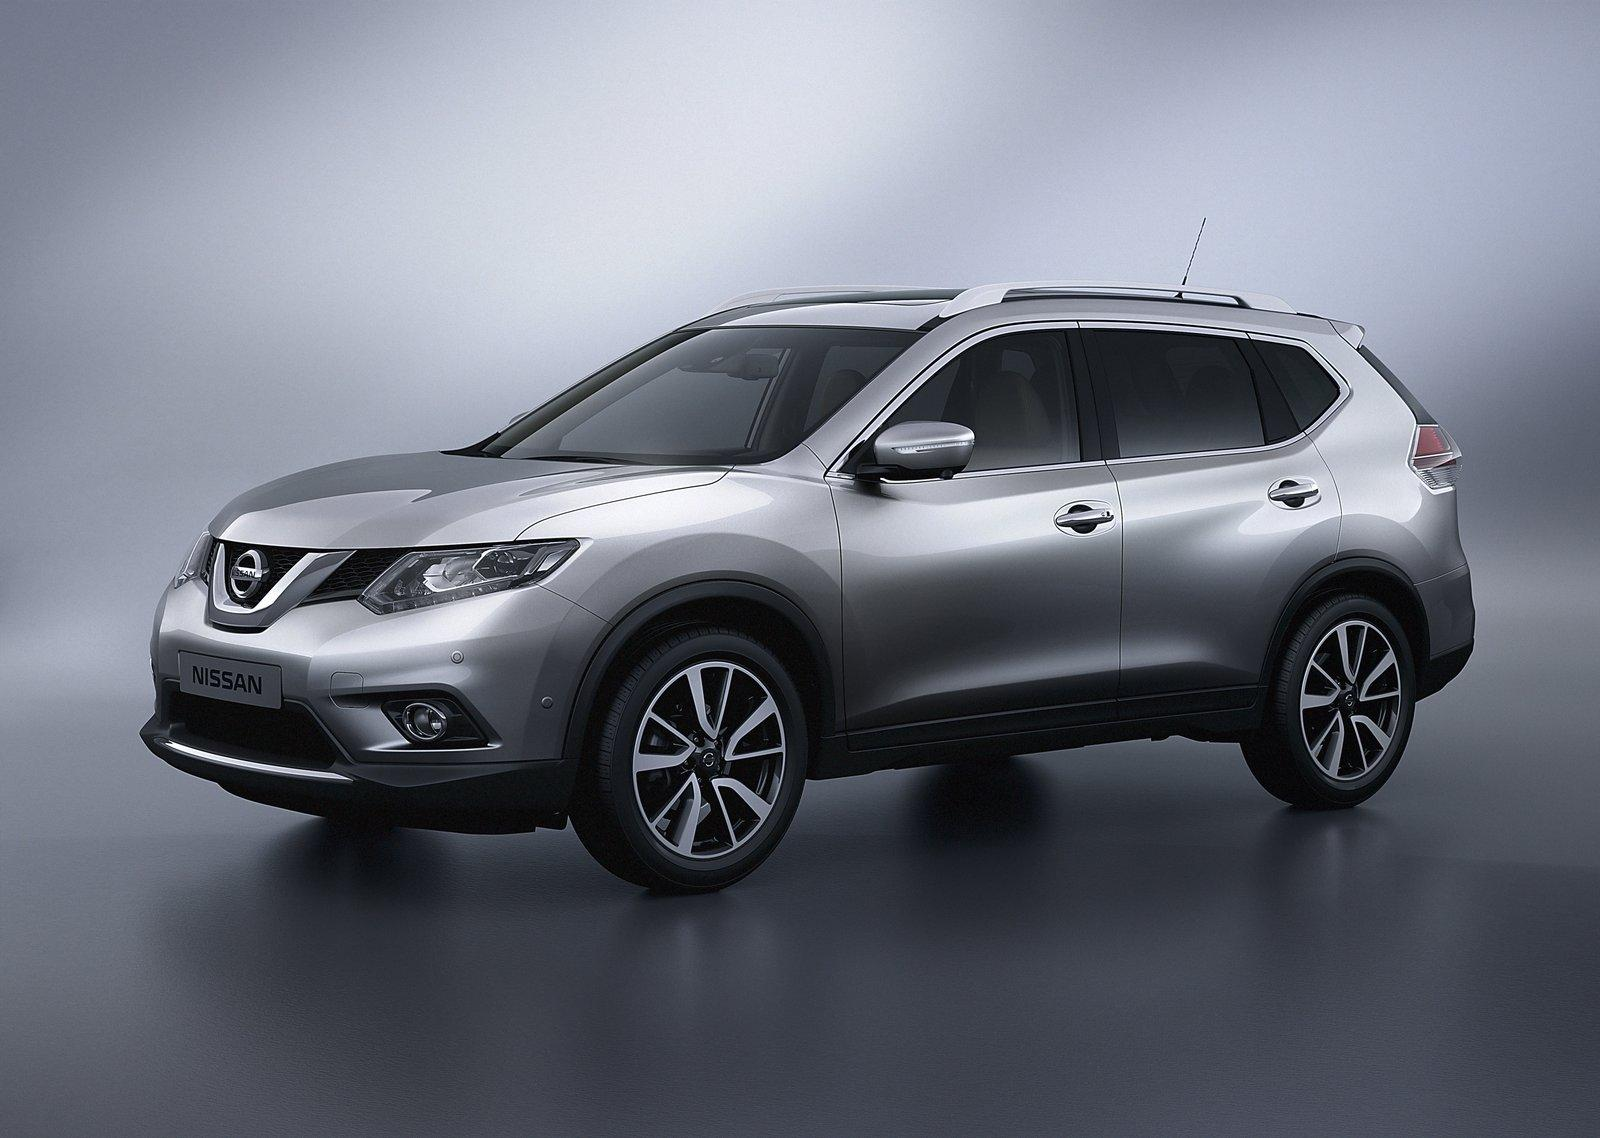 2014 nissan x trail launch date autos weblog. Black Bedroom Furniture Sets. Home Design Ideas